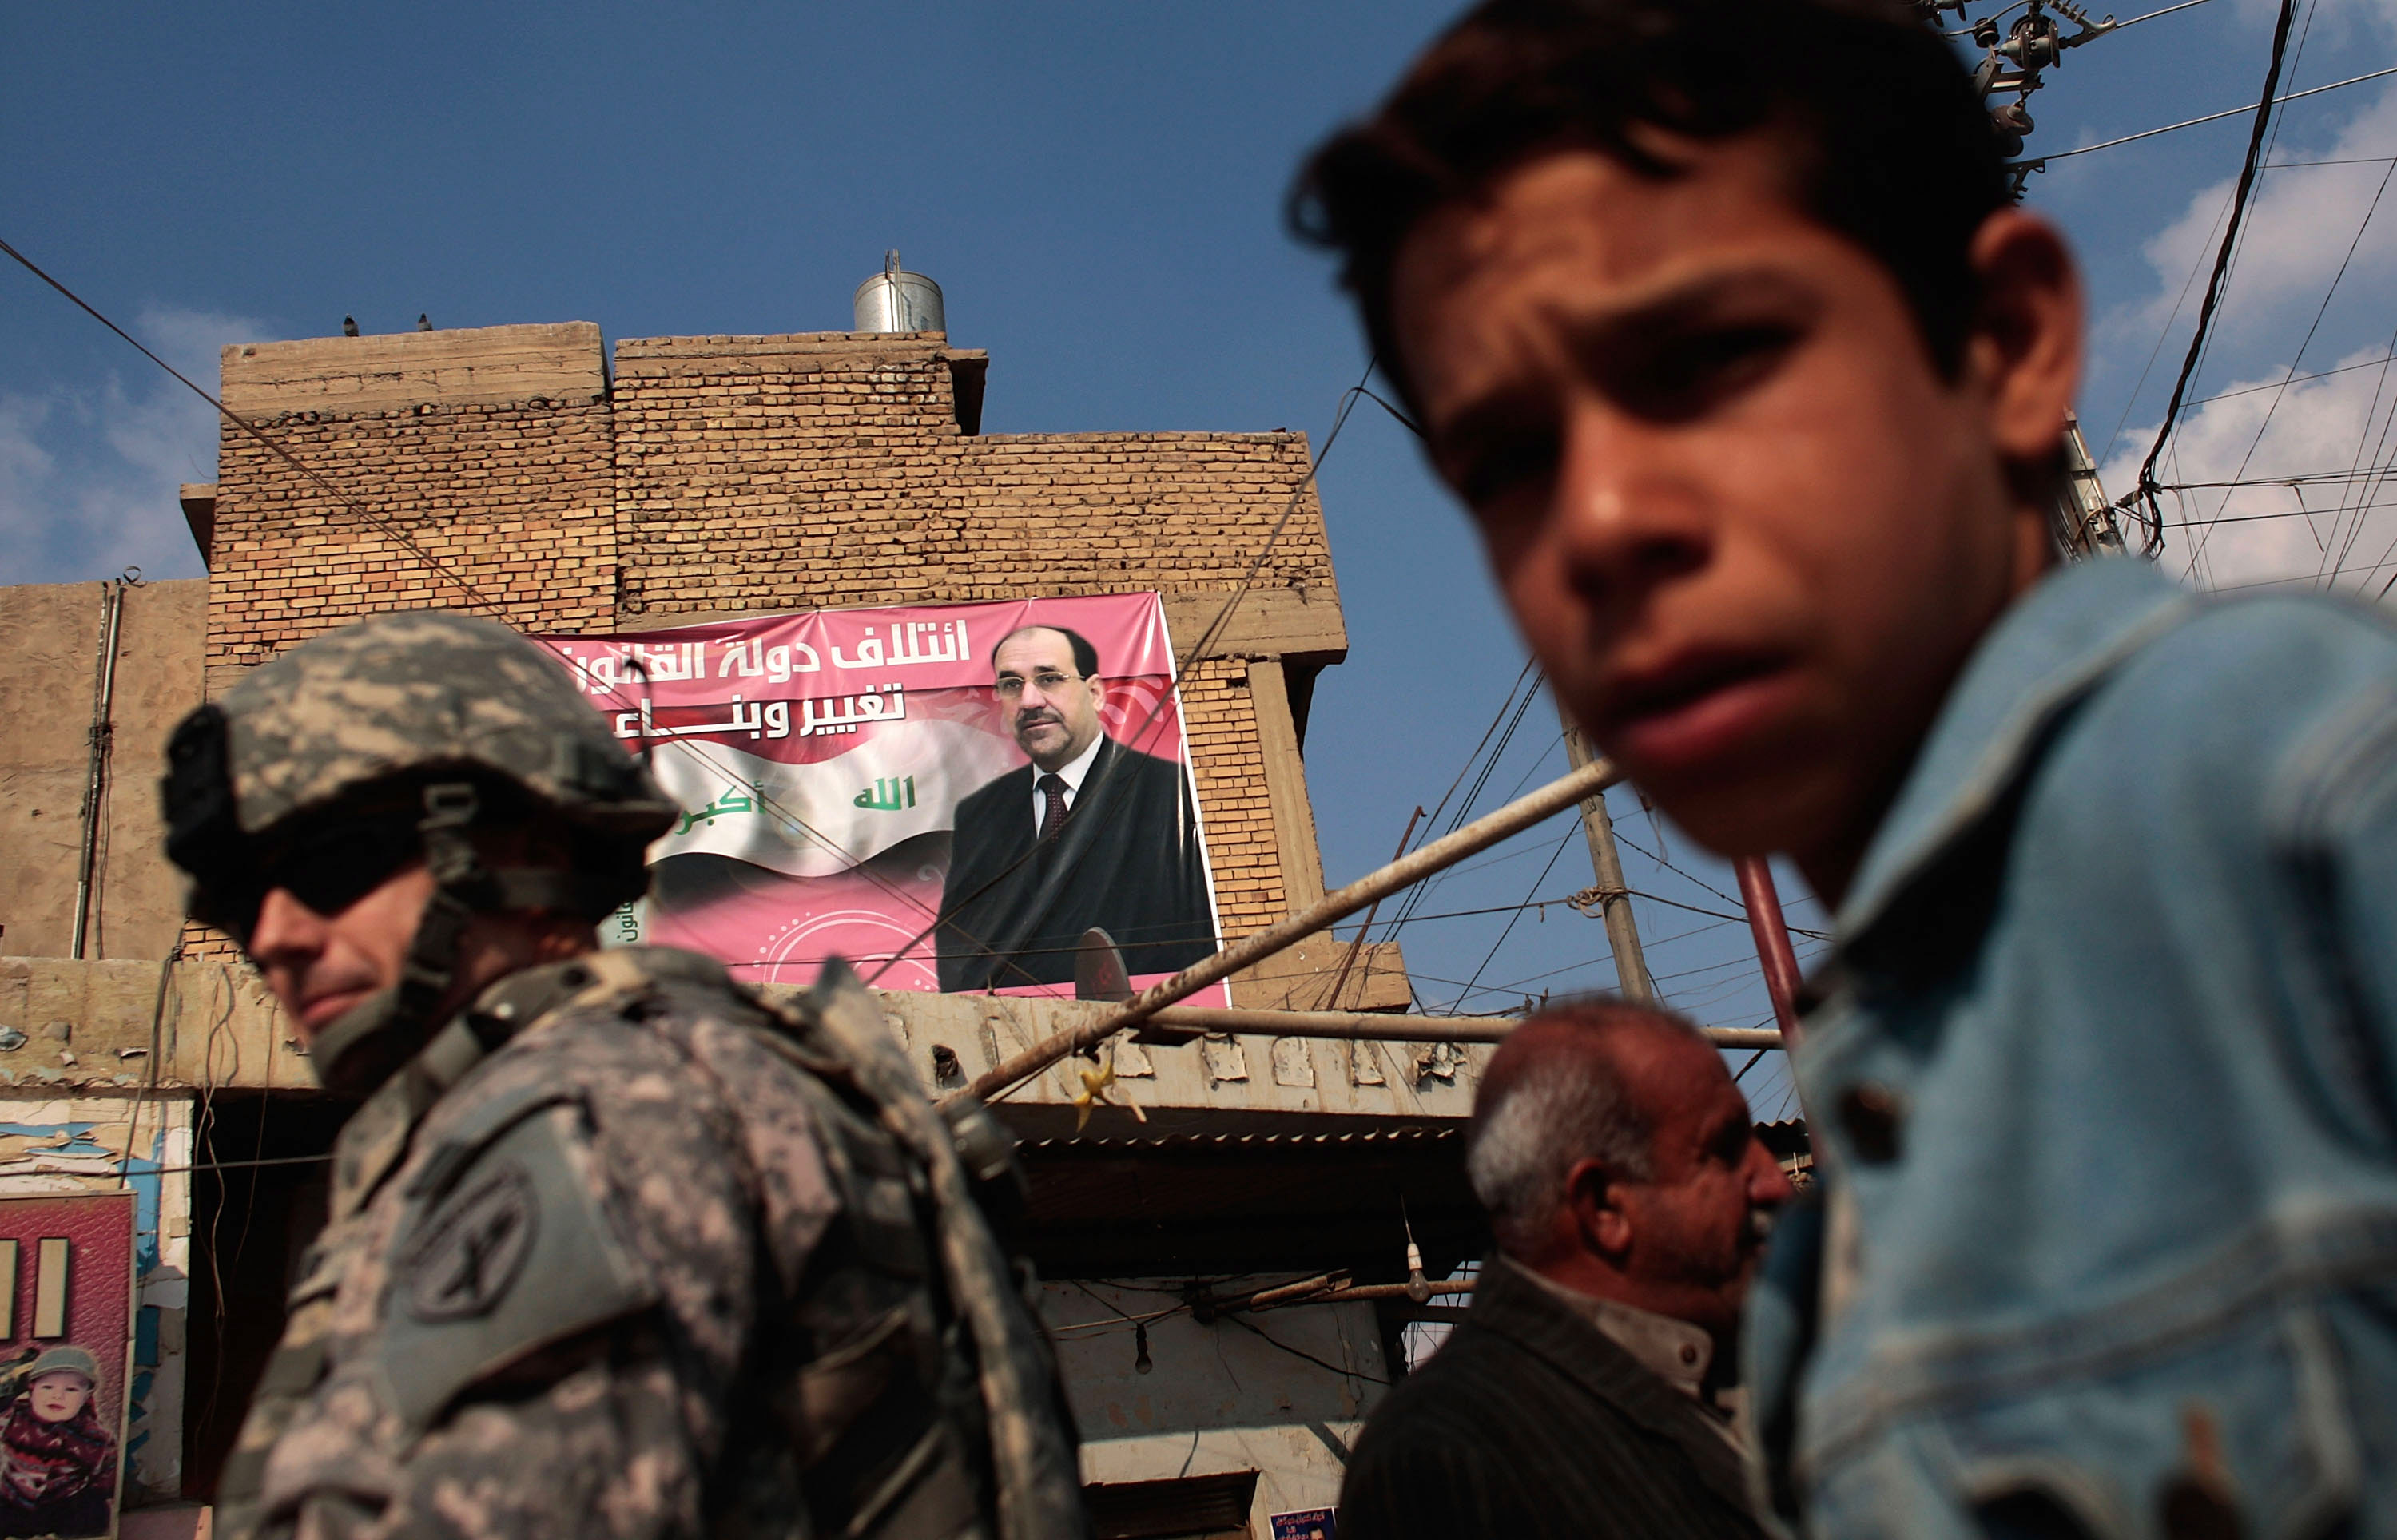 Chris Hondros/Getty Images. A boy and a soldier in the U.S. Army's 172nd Brigade Combat Team stand near a campaign poster touting Iraqi Prime Minister Nouri al-Maliki in Musayyib, in the Babil Province, Iraq.